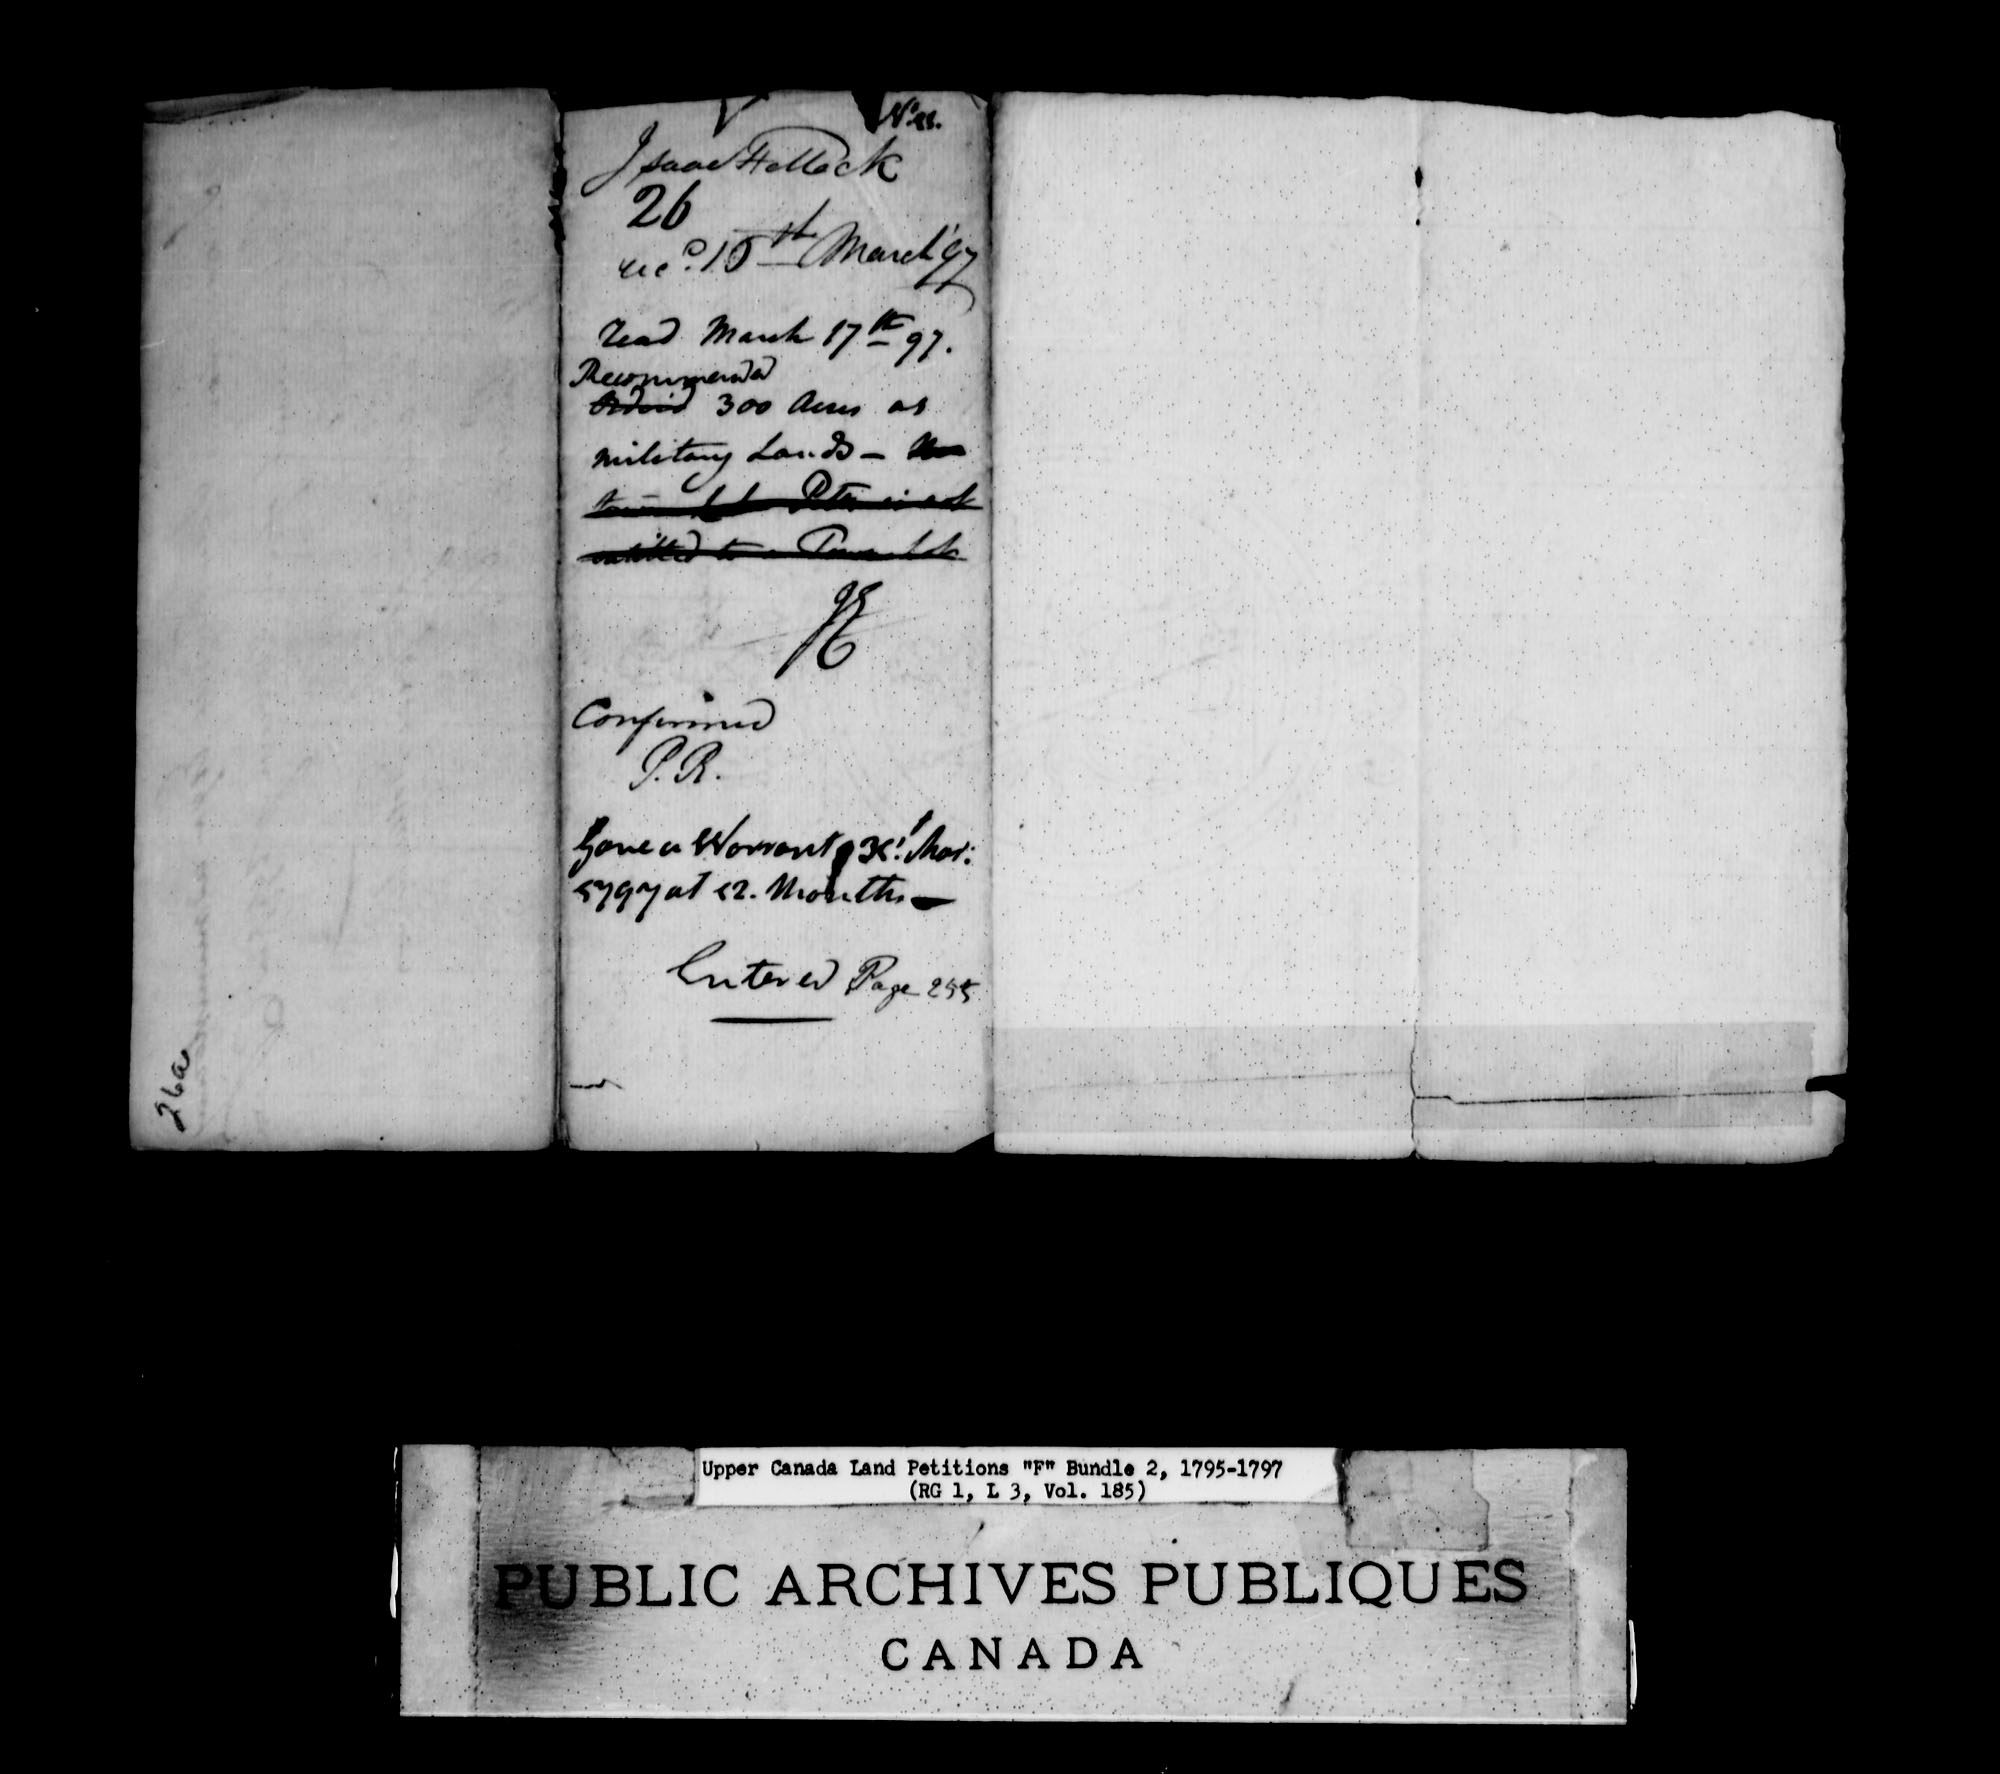 Title: Upper Canada Land Petitions (1763-1865) - Mikan Number: 205131 - Microform: c-1893